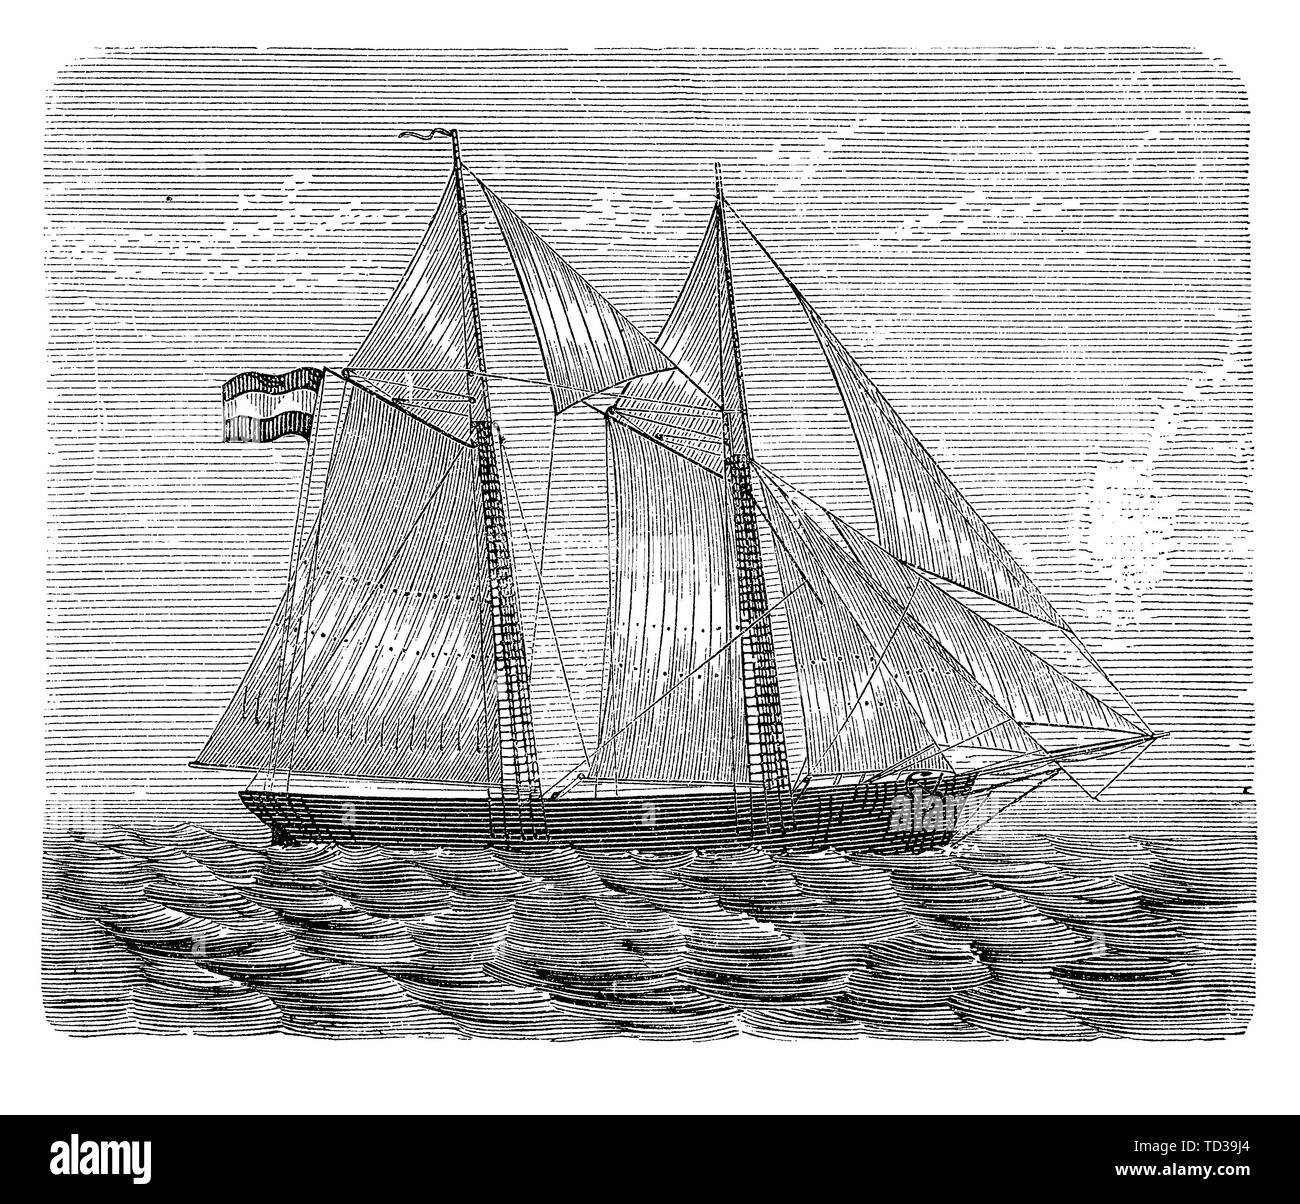 Brigantine with gaff rigged sails, where the sails are four-cornered and controlled to the peak allowing to sail close to the direction of the wind - Stock Image